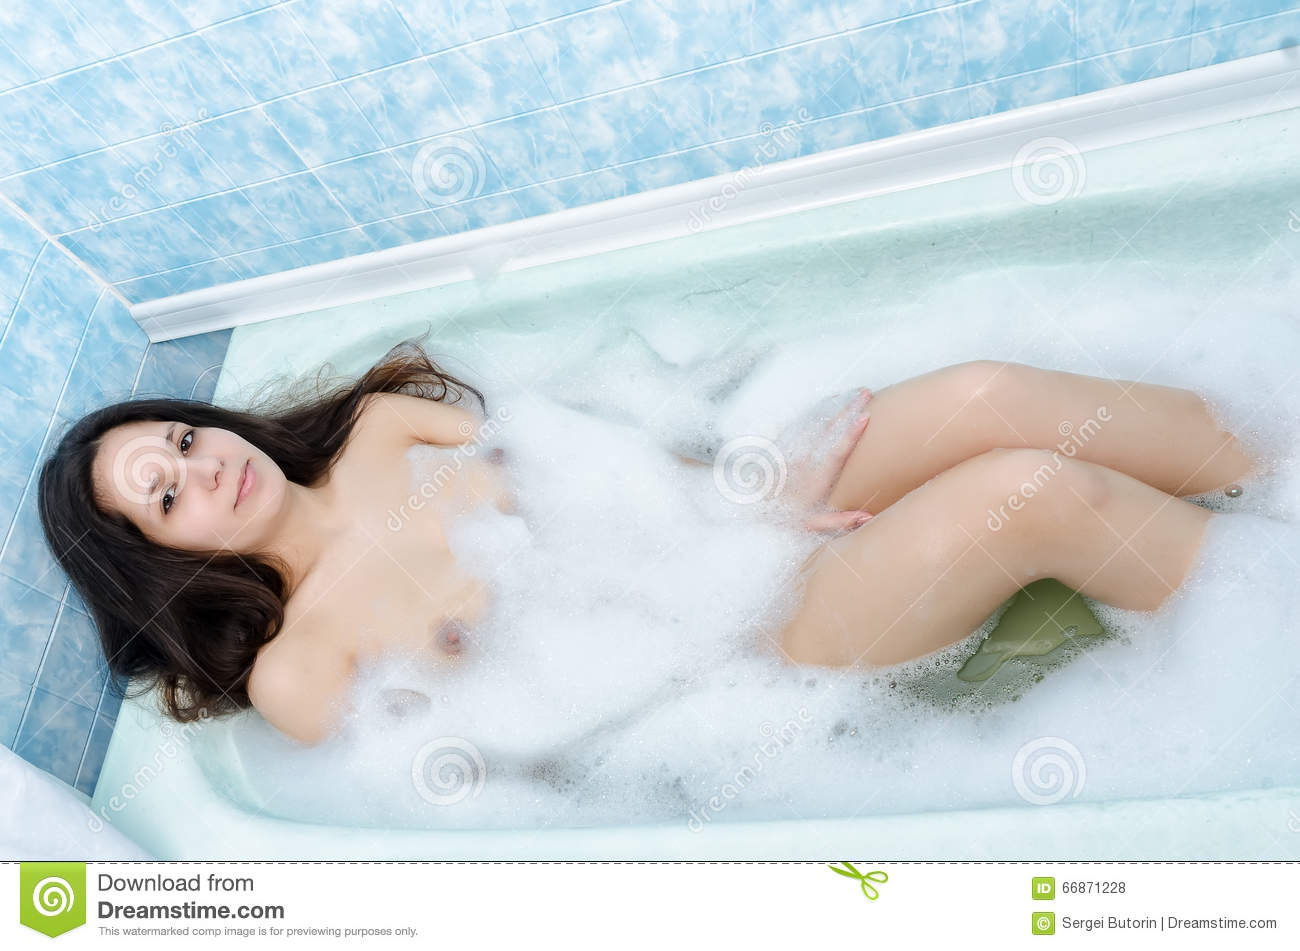 Brunette naked women in the bathtub Young Woman Lying In Bathtub With Foam And Relax Stock Photo Image Of Grace Beautiful 66871228